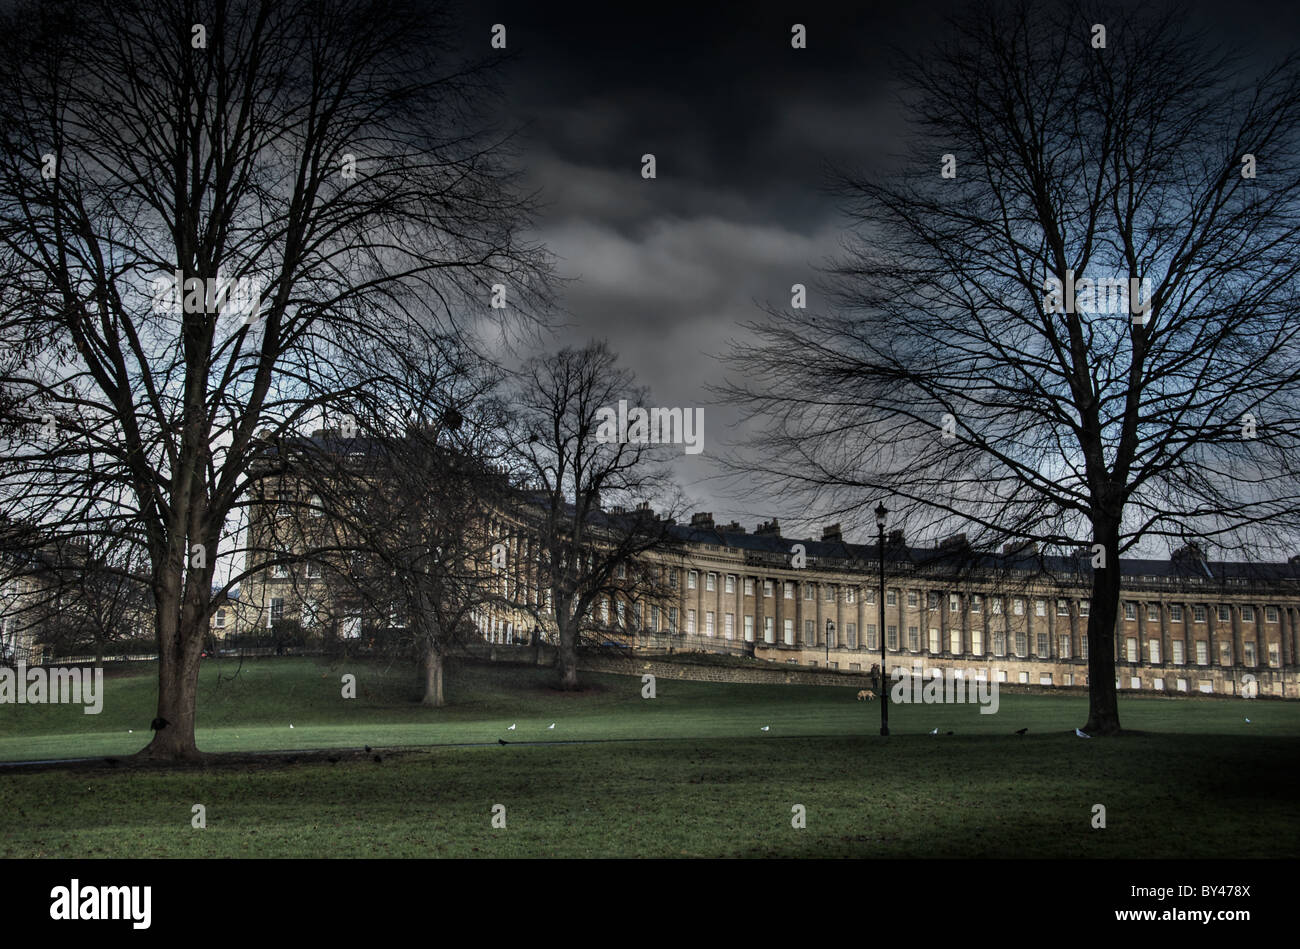 The Royal Crescent at Bath England with parkland - Stock Image